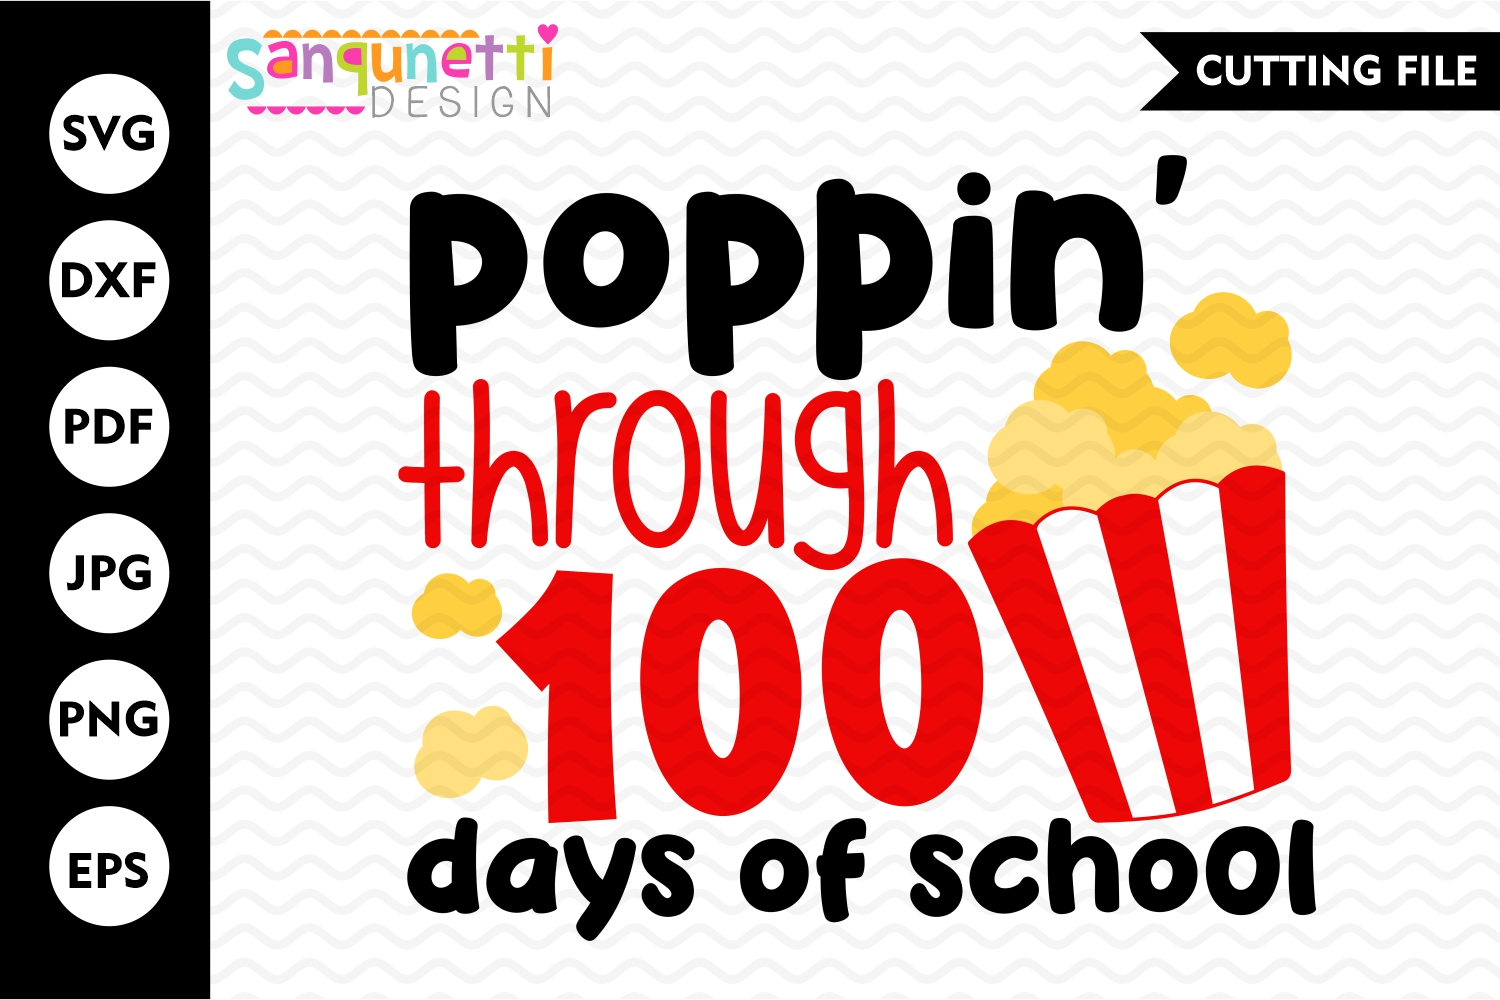 Poppin through 100 days svg, school cutting file example image 1